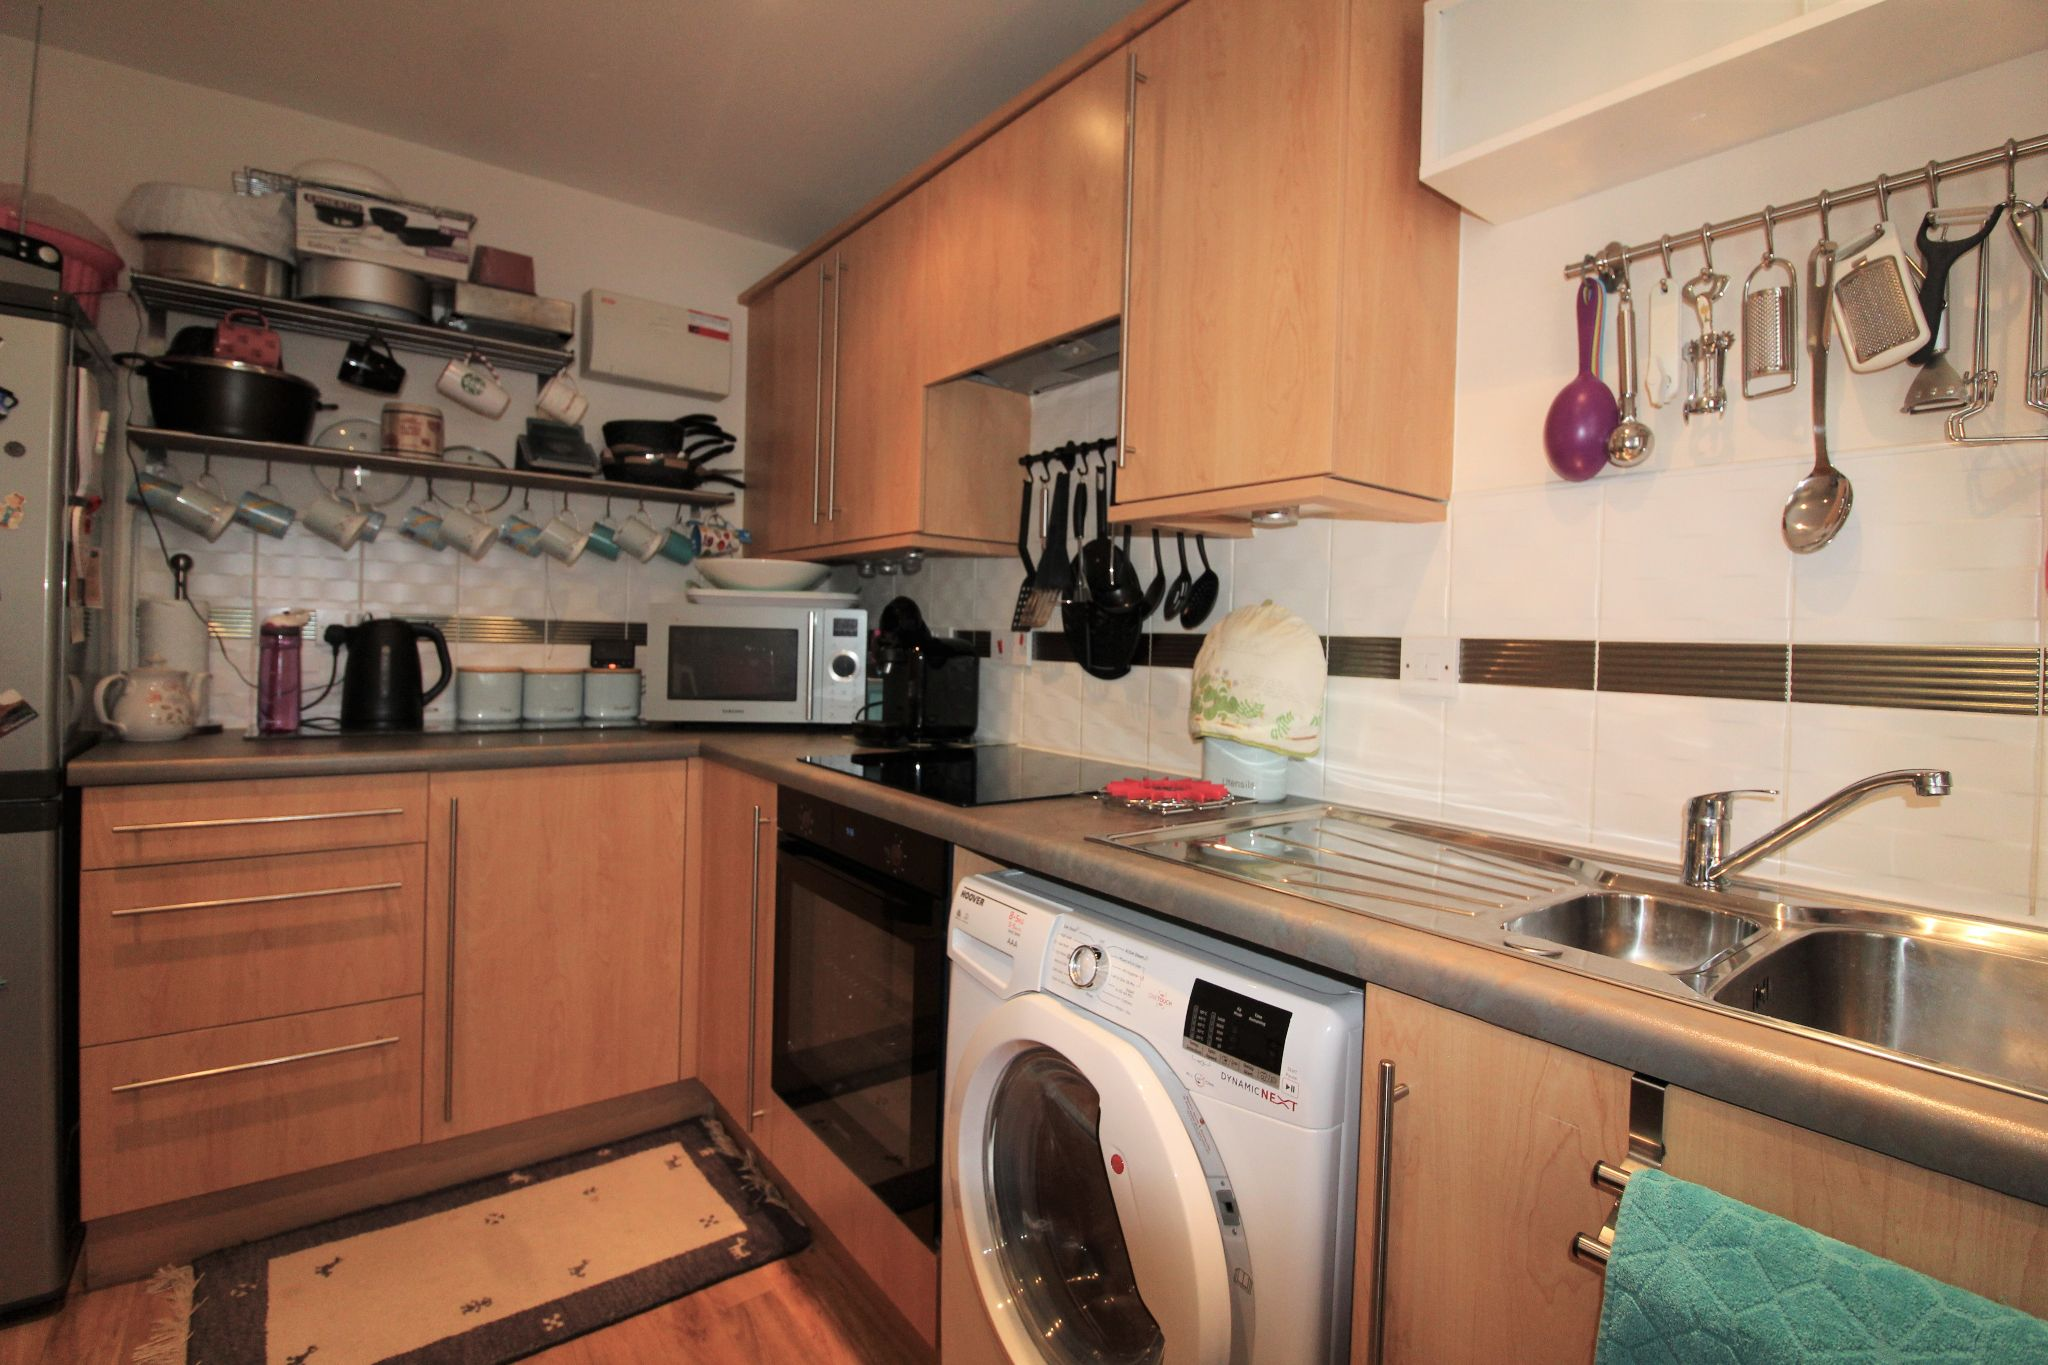 2 bedroom semi-detached house For Sale in Durham - Photograph 12.